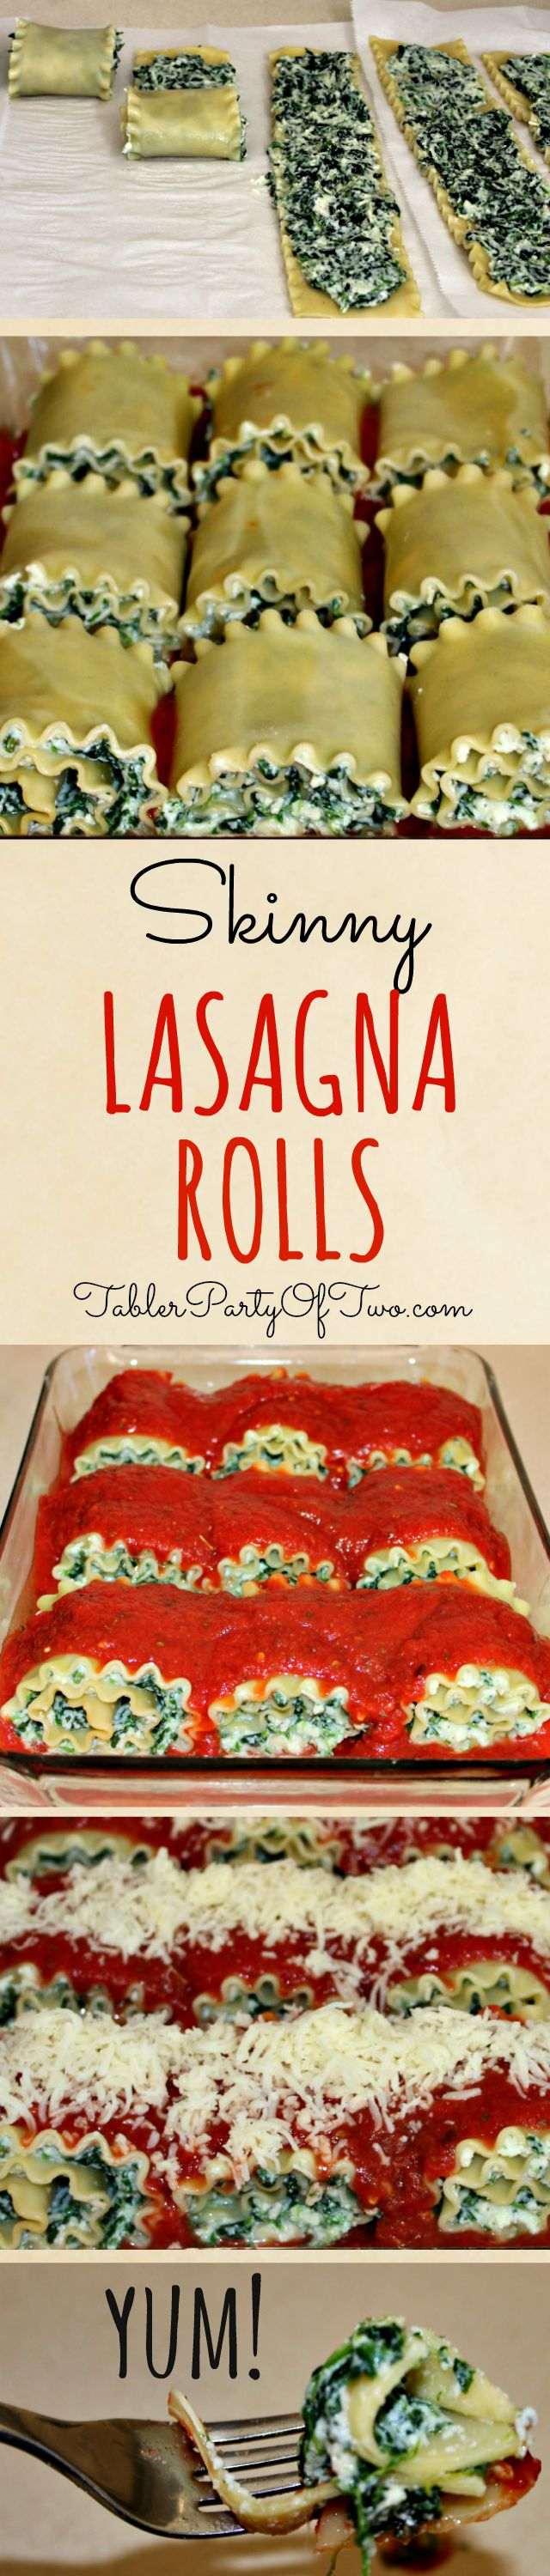 "These Skinny Lasagna Rolls are really easy to make and are a ""no-guilt"" way to enjoy the guilty pleasure of lasagna! Have one roll with a side of salad for a perfectly healthy dinner!"